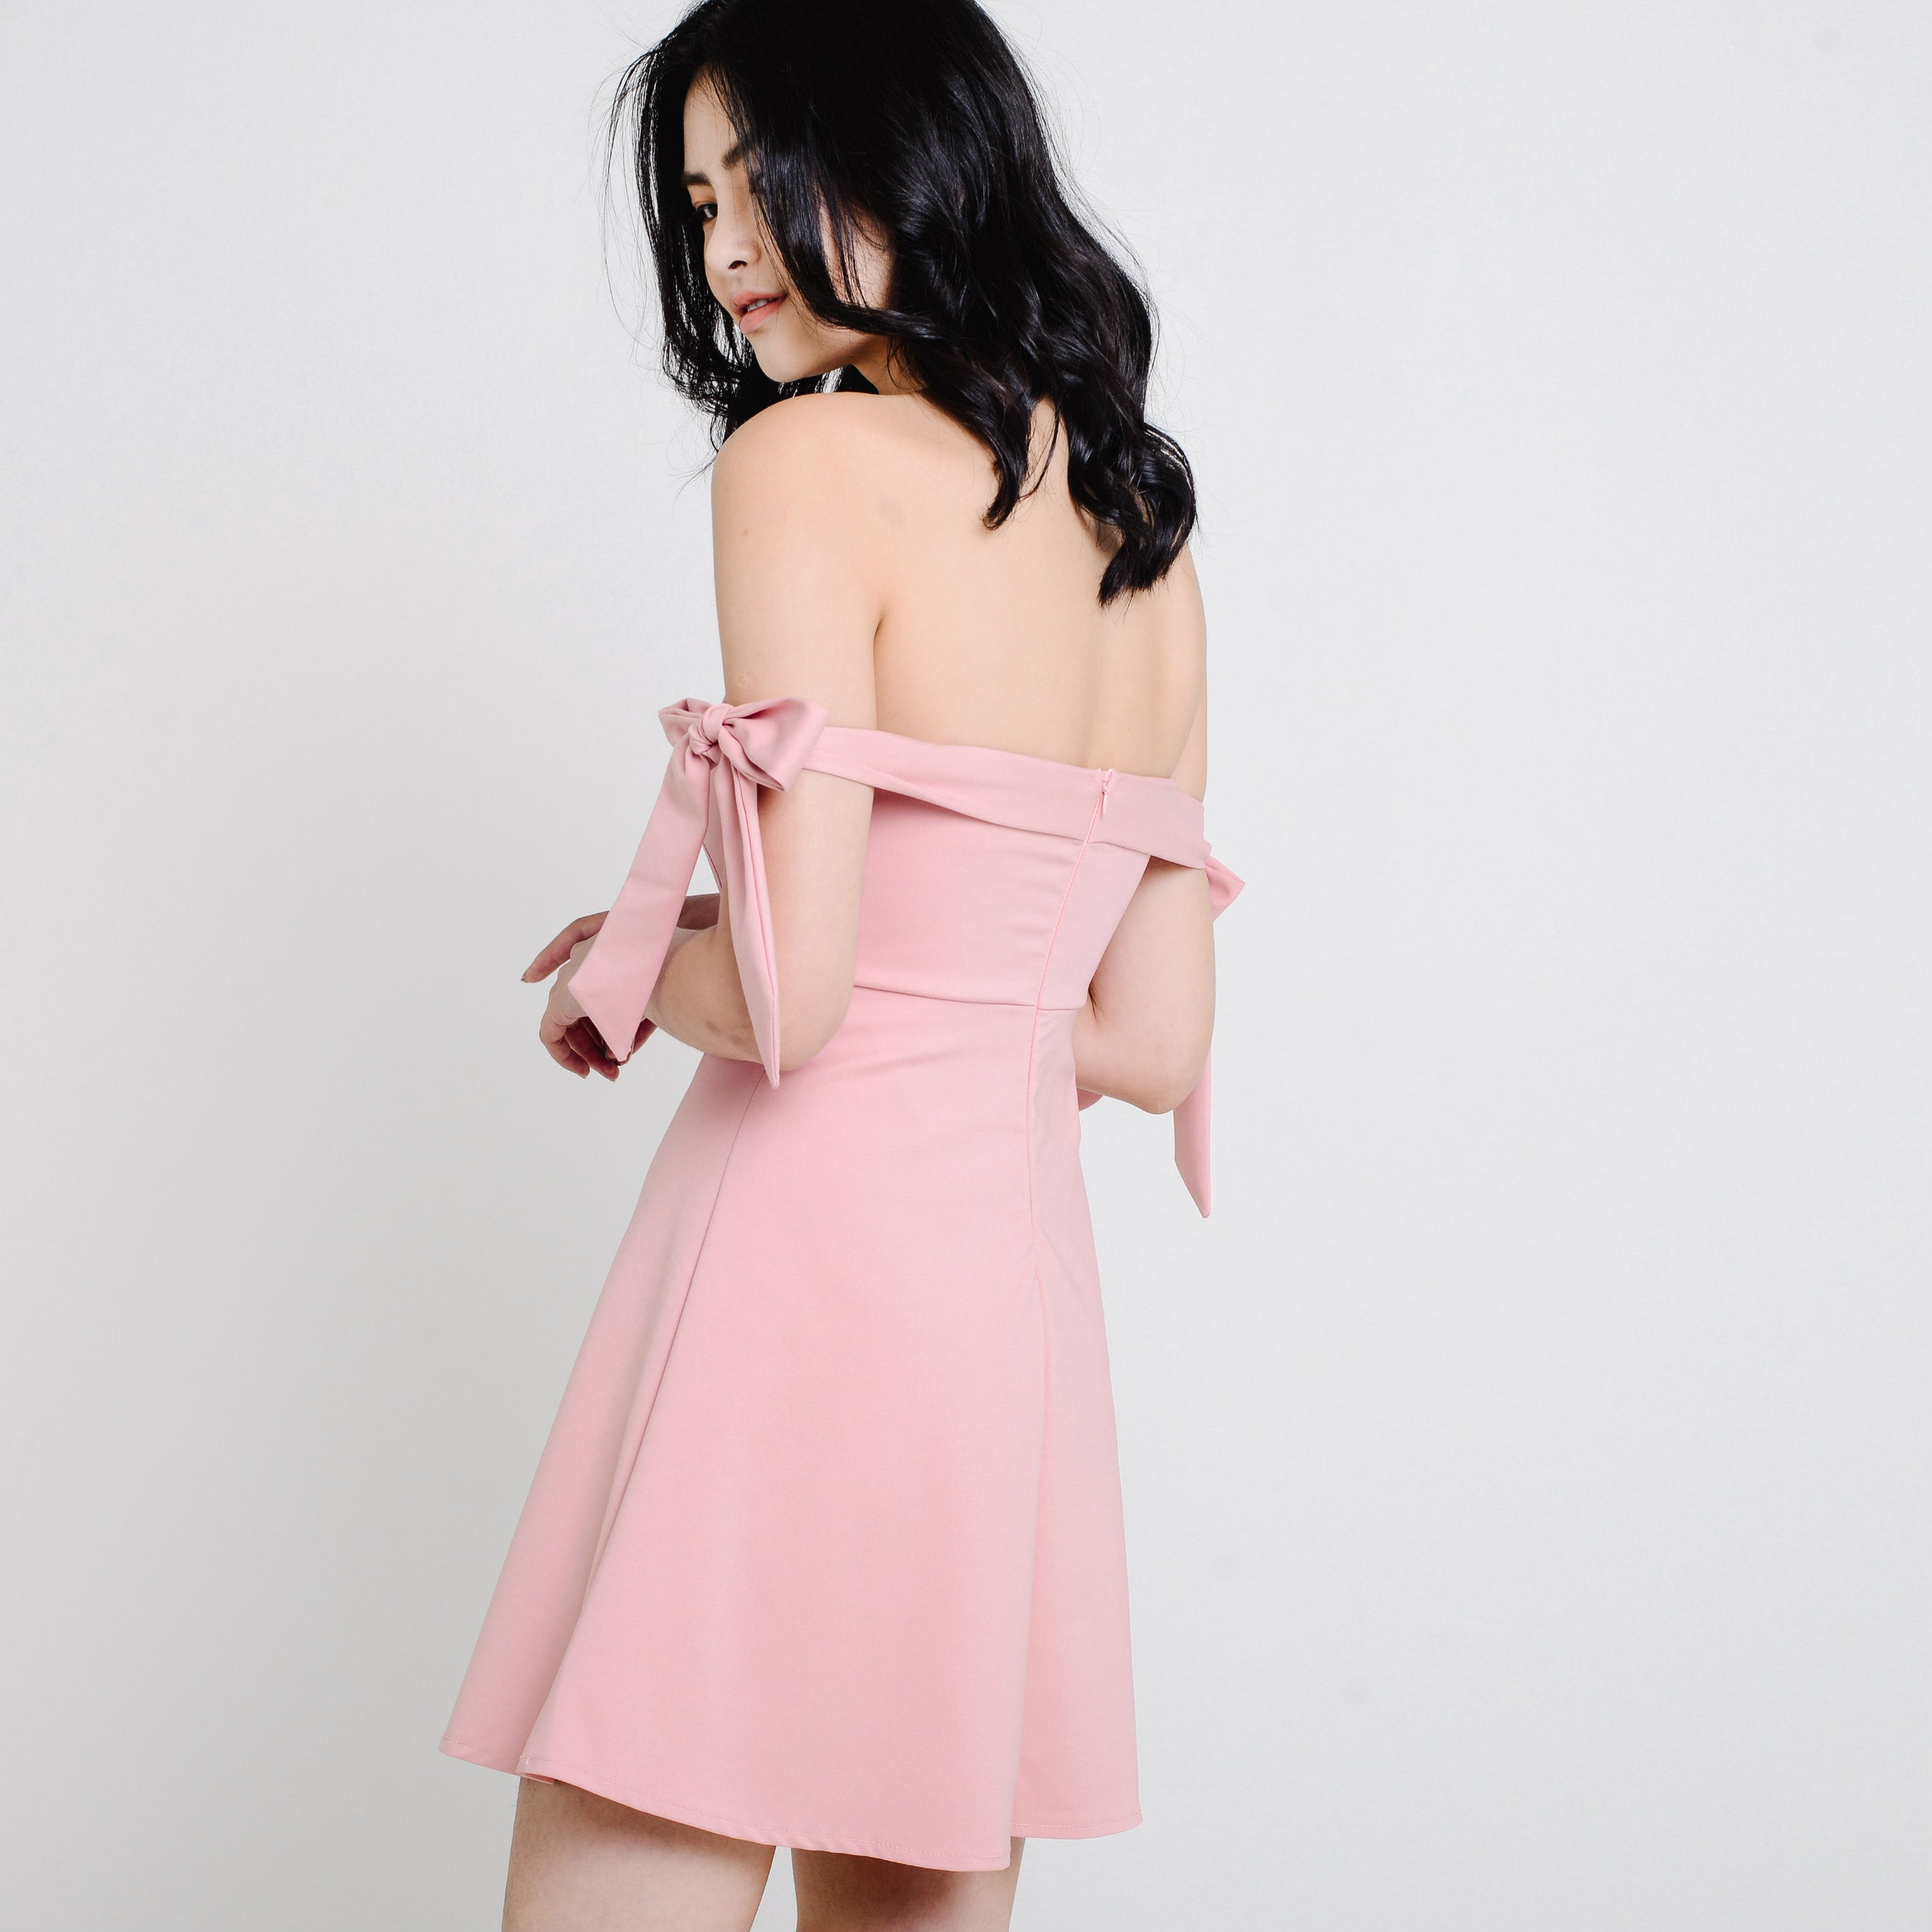 Kiara Bow Dress - Pink